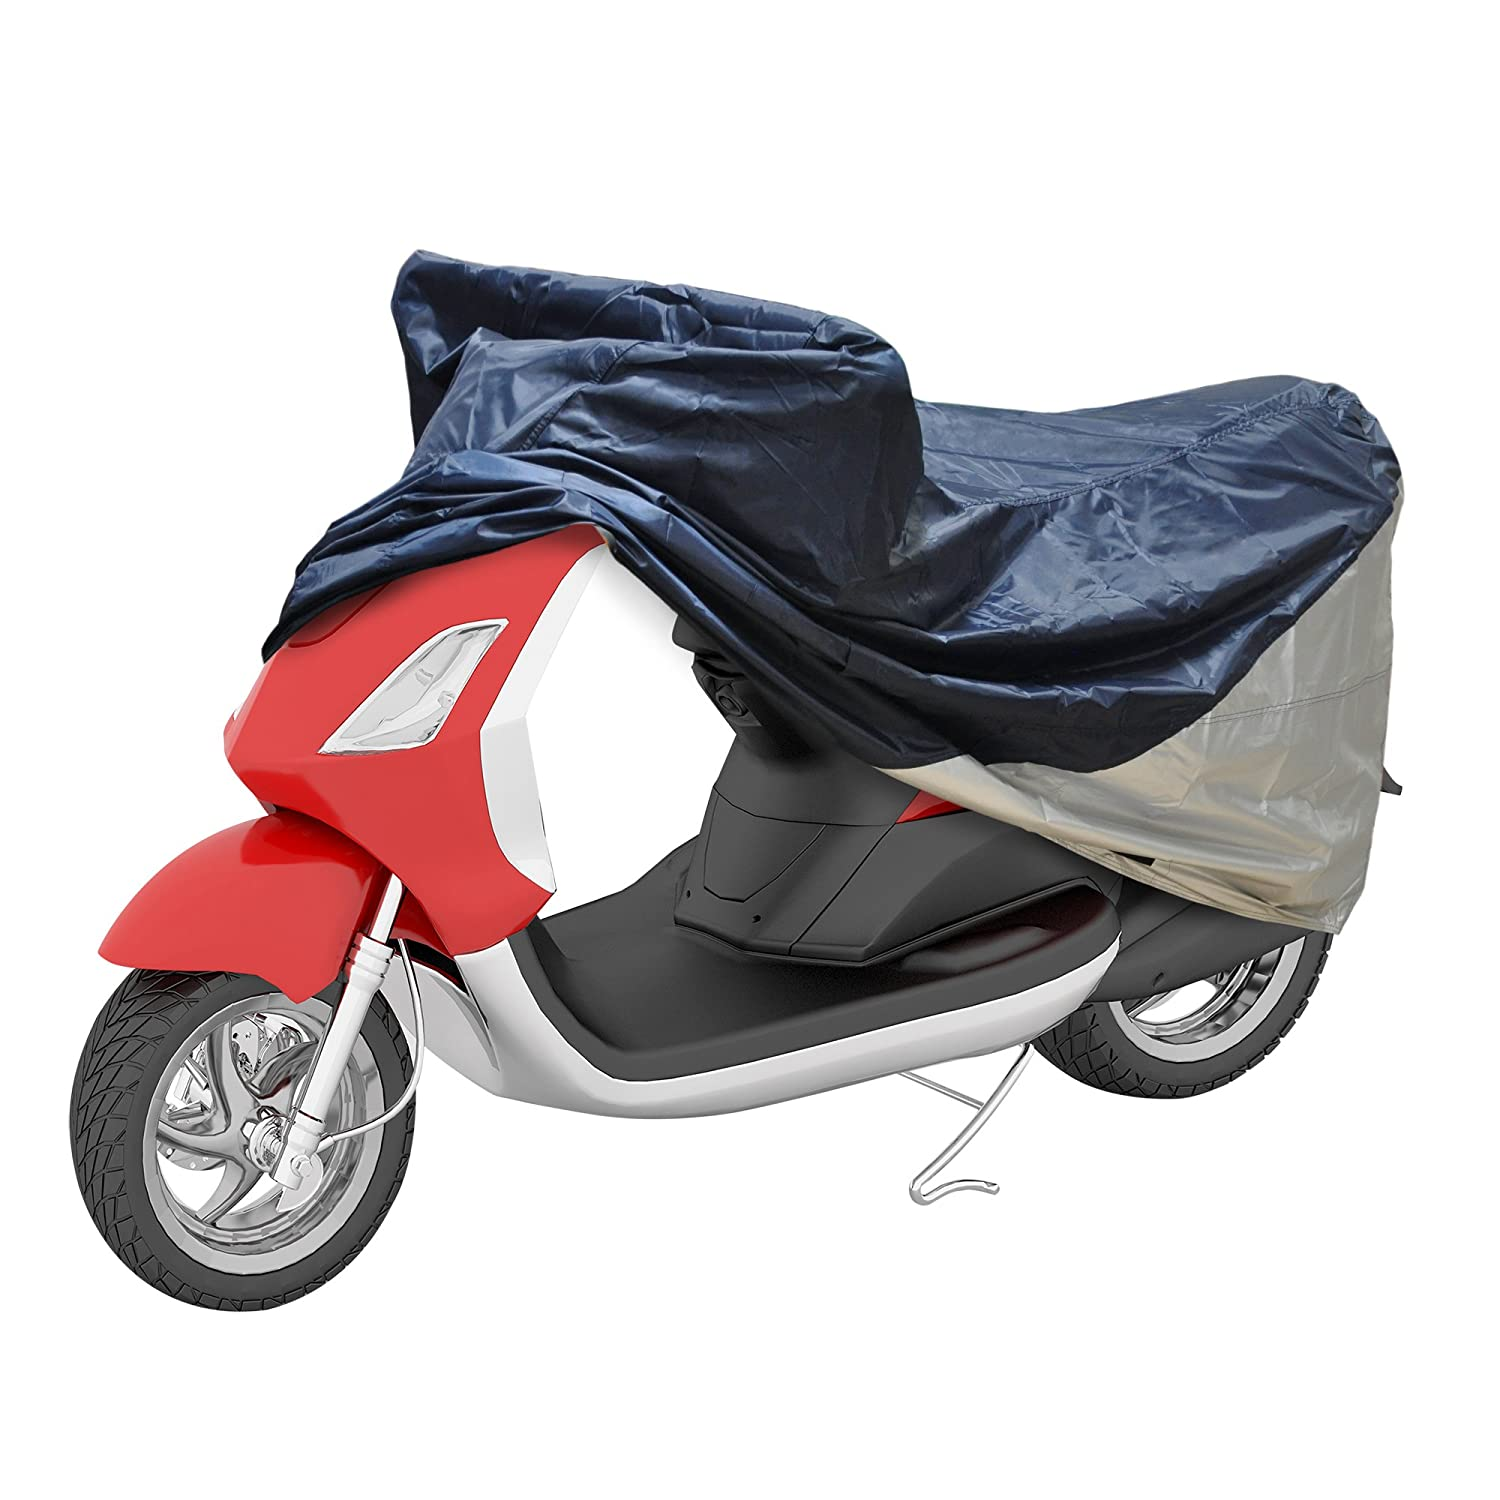 Detailers Preference Polyester Scooter Cover Fits Small and Medium Eurow /& O/'Reilly Corp.